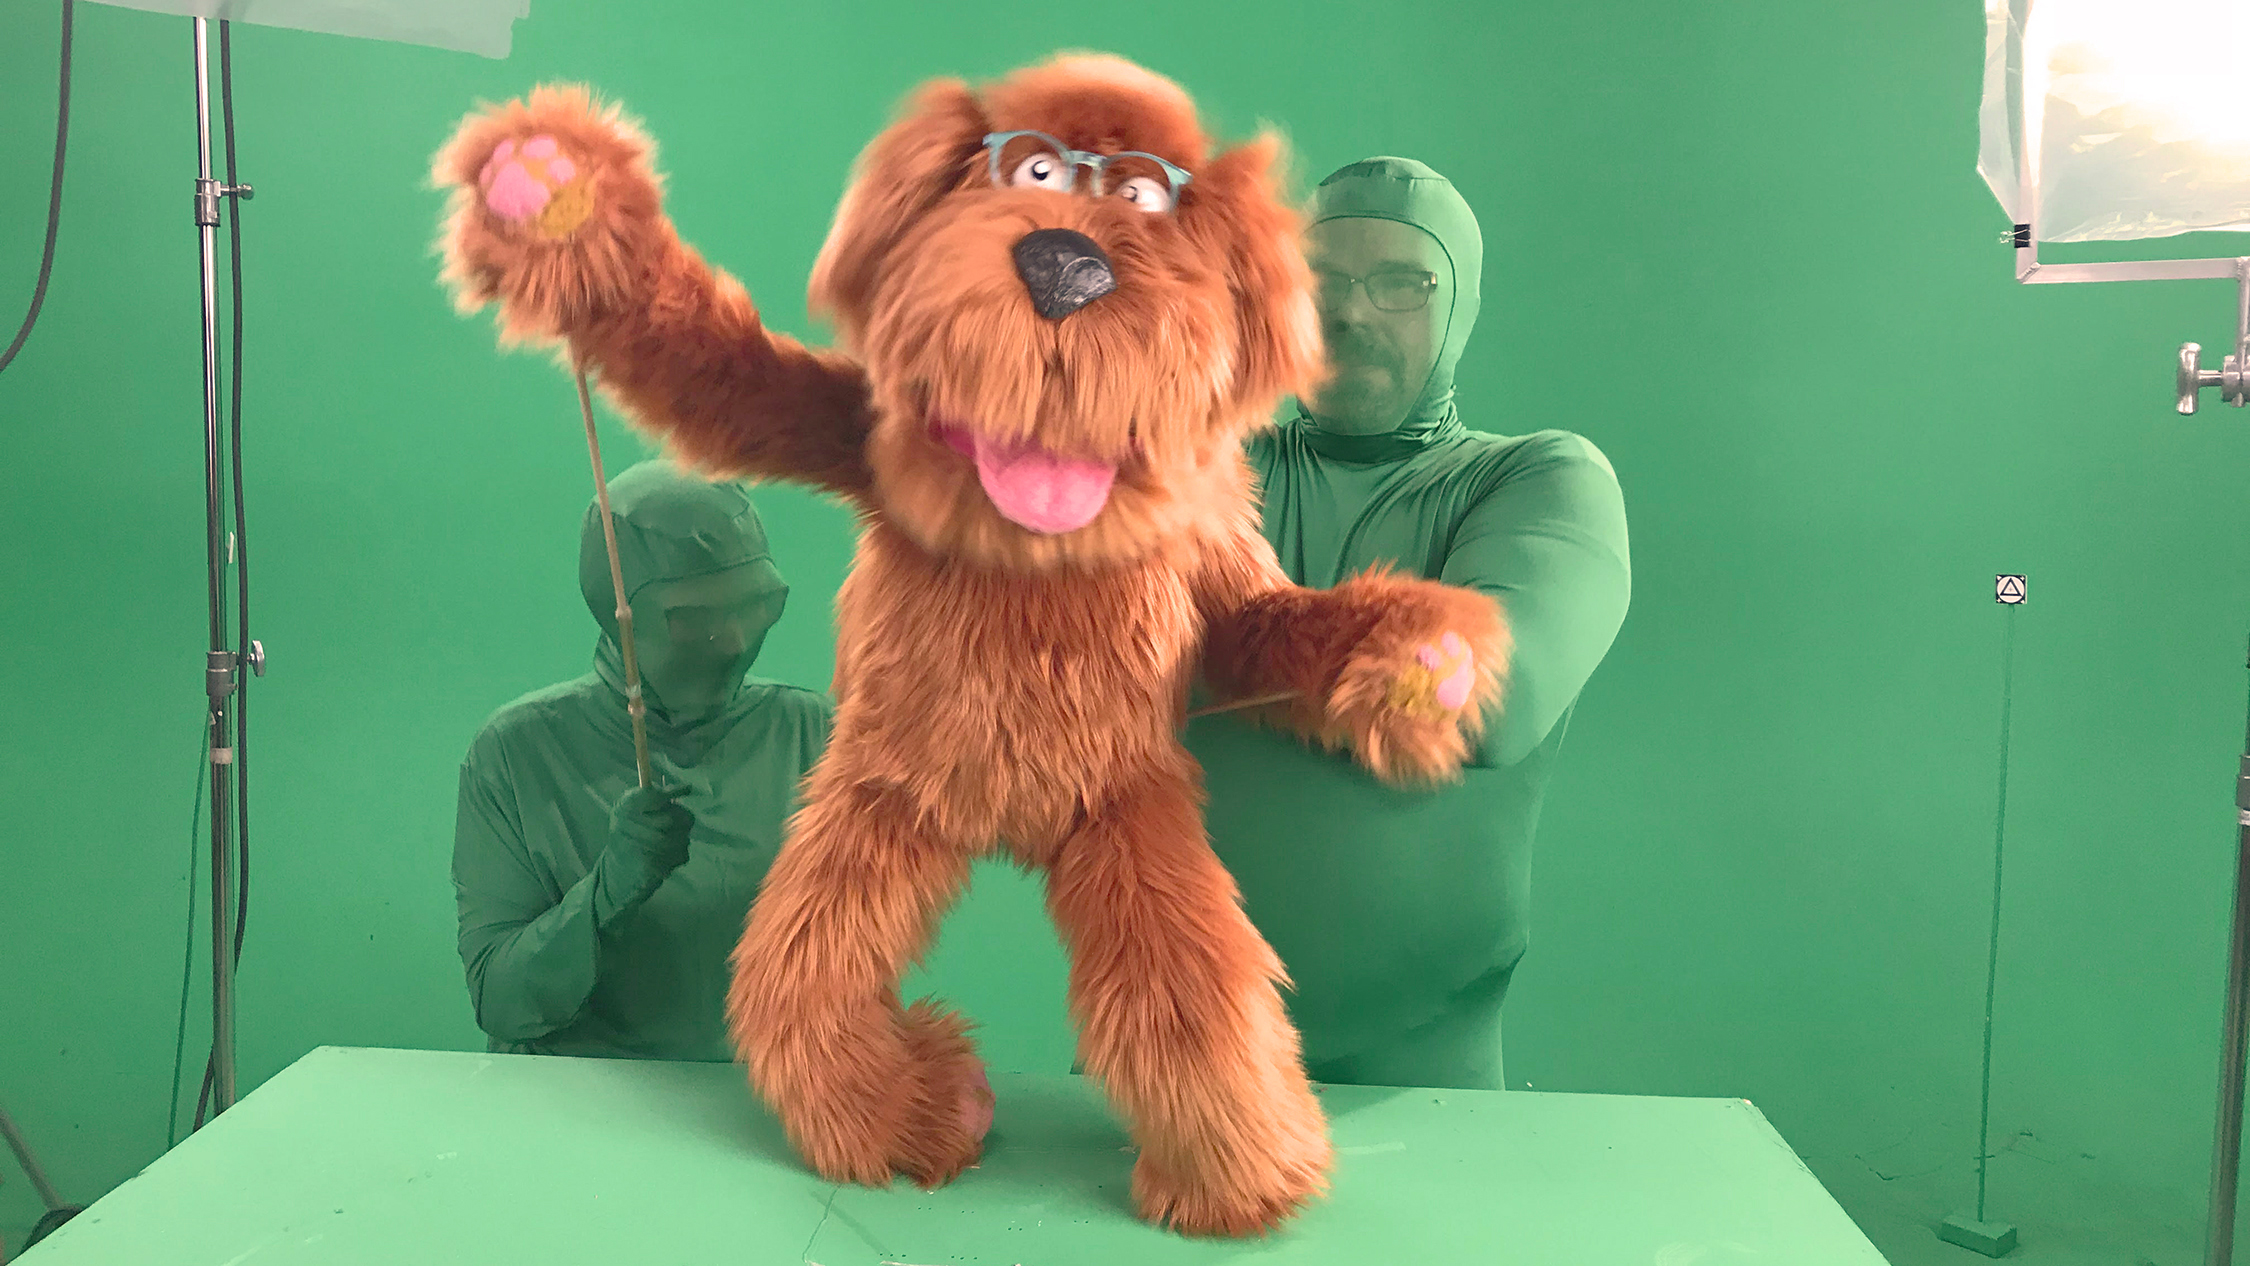 The Fuzzy Dog puppet takes a moment to wave to his fans @ Bent Image Lab, our kanine star from Honda Dream Commute.